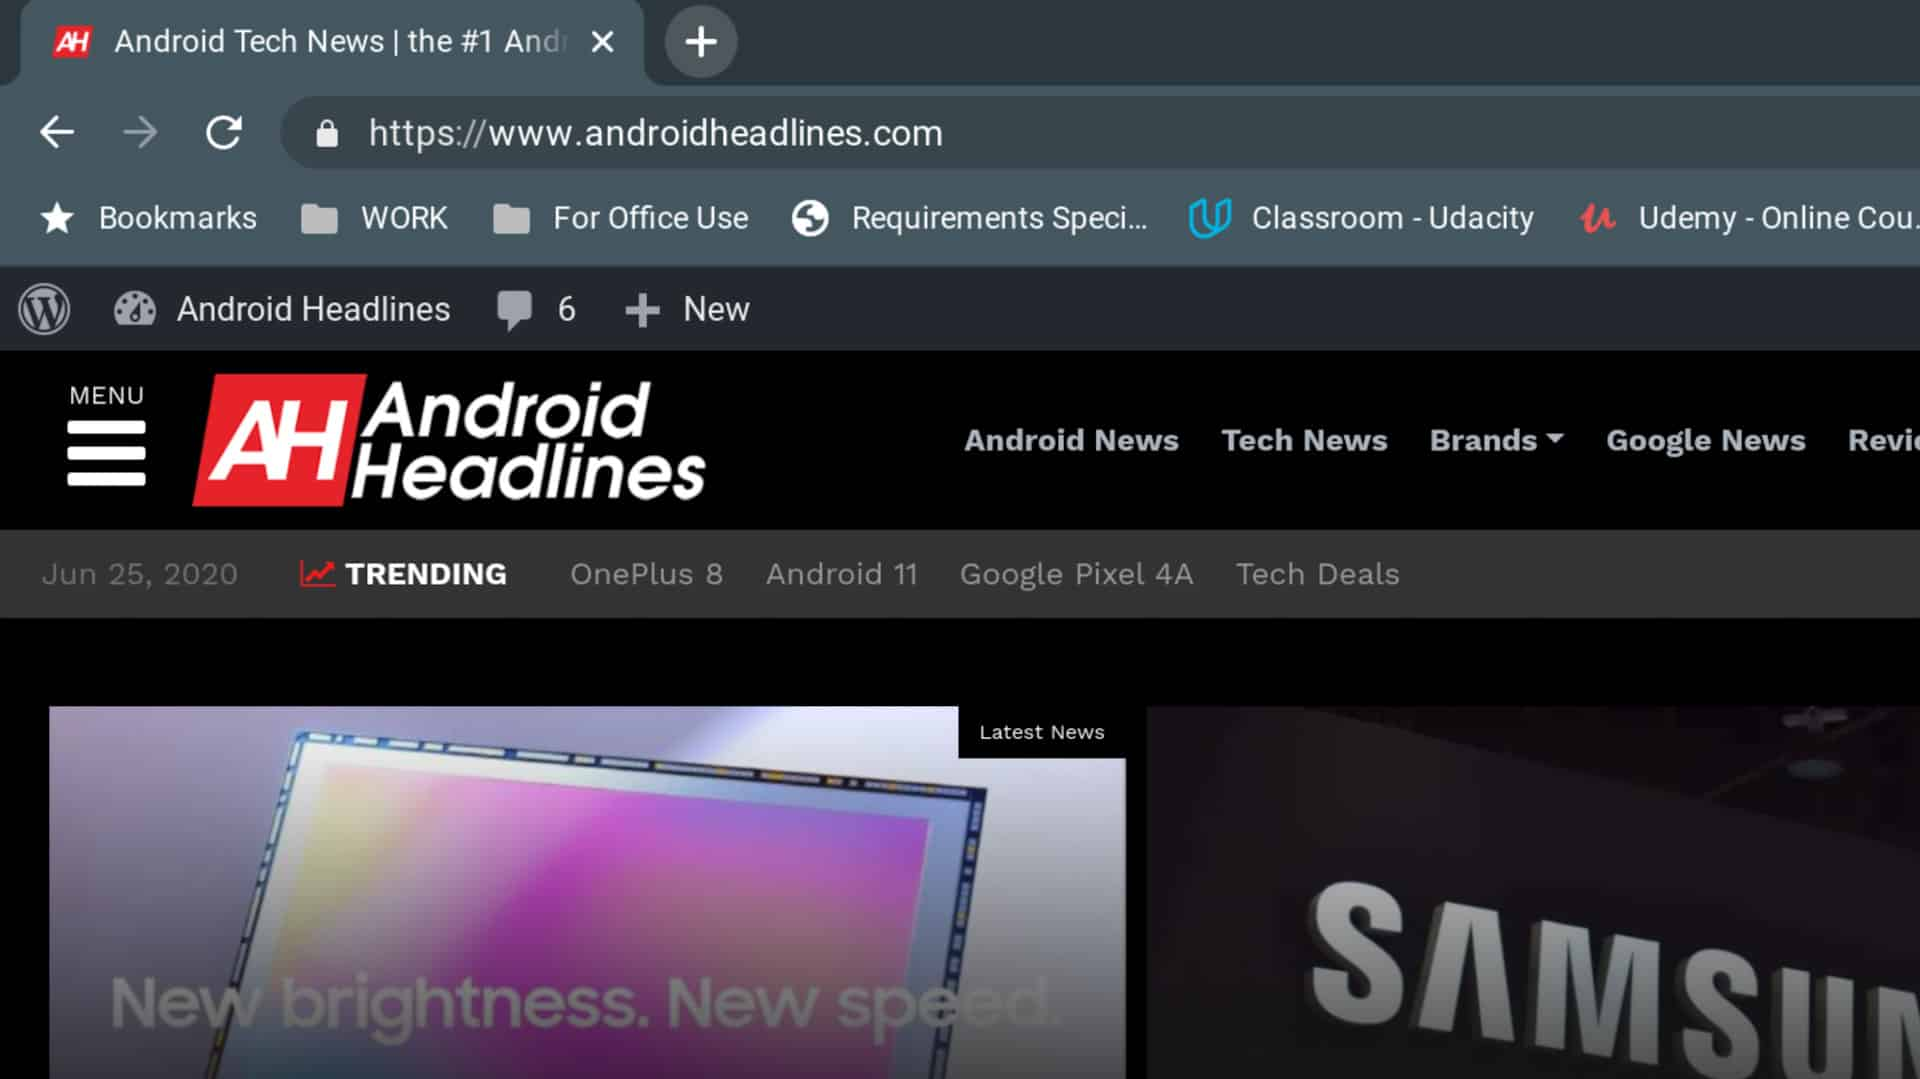 How to new g suite docs slides sheets forms url 01